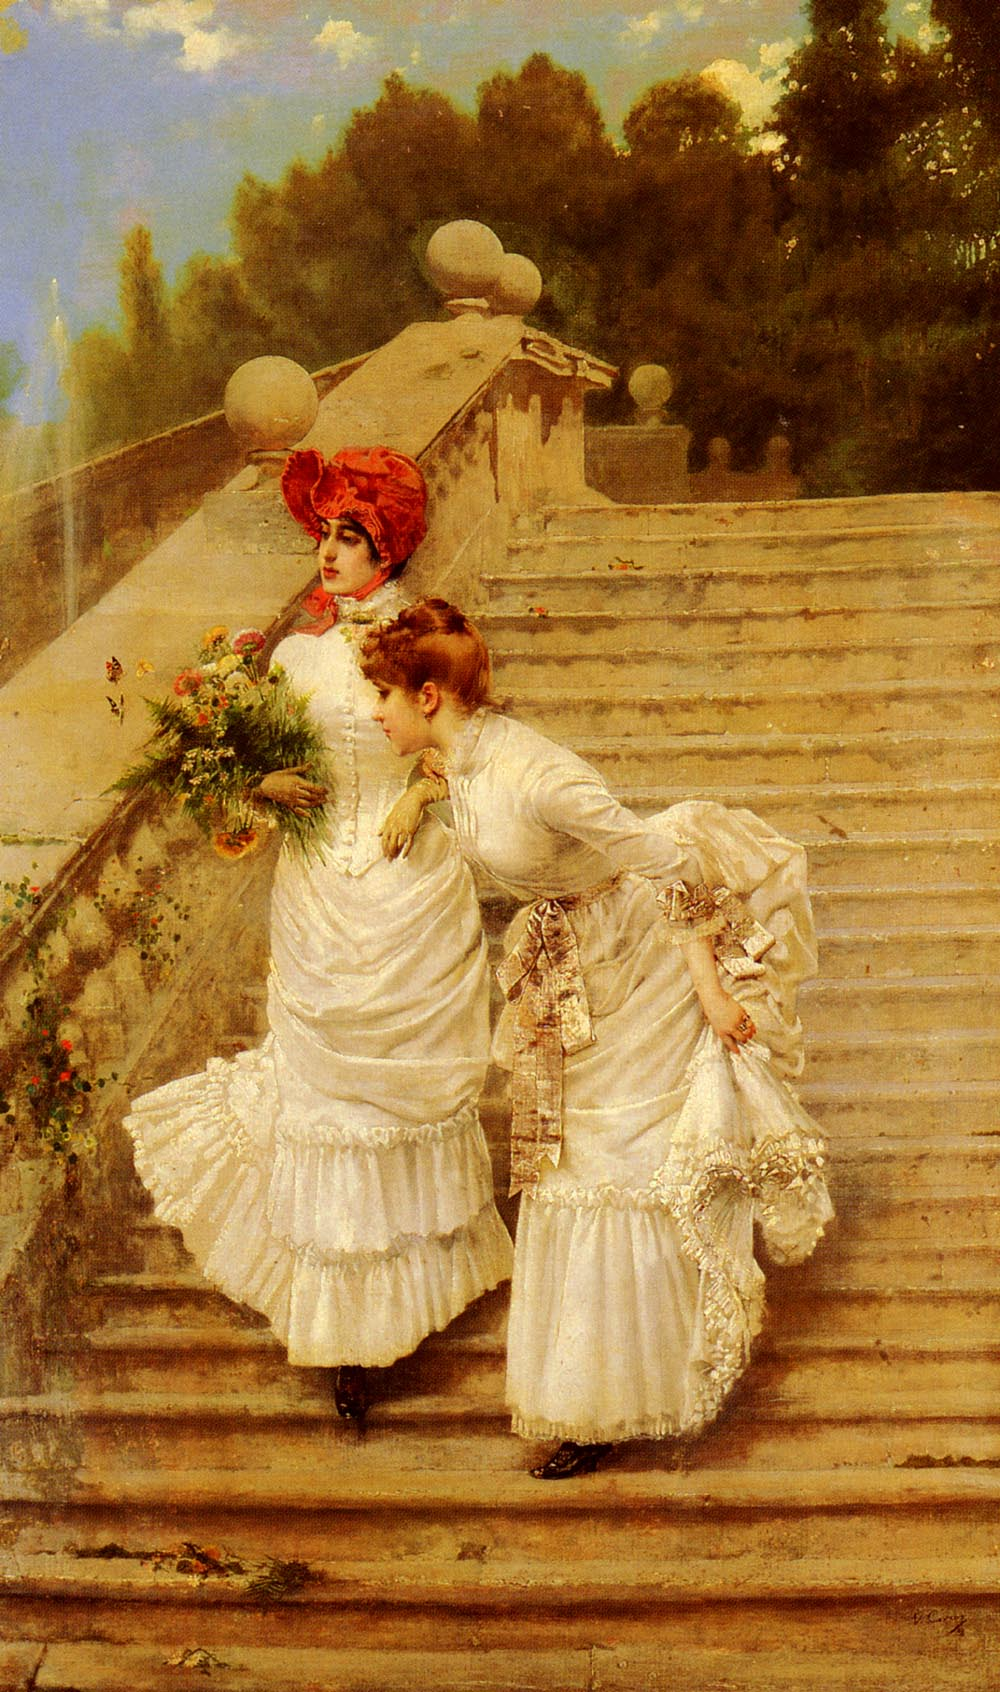 The Rendezvous :: Vittorio Matteo Corcos - Romantic scenes in art and painting ôîòî